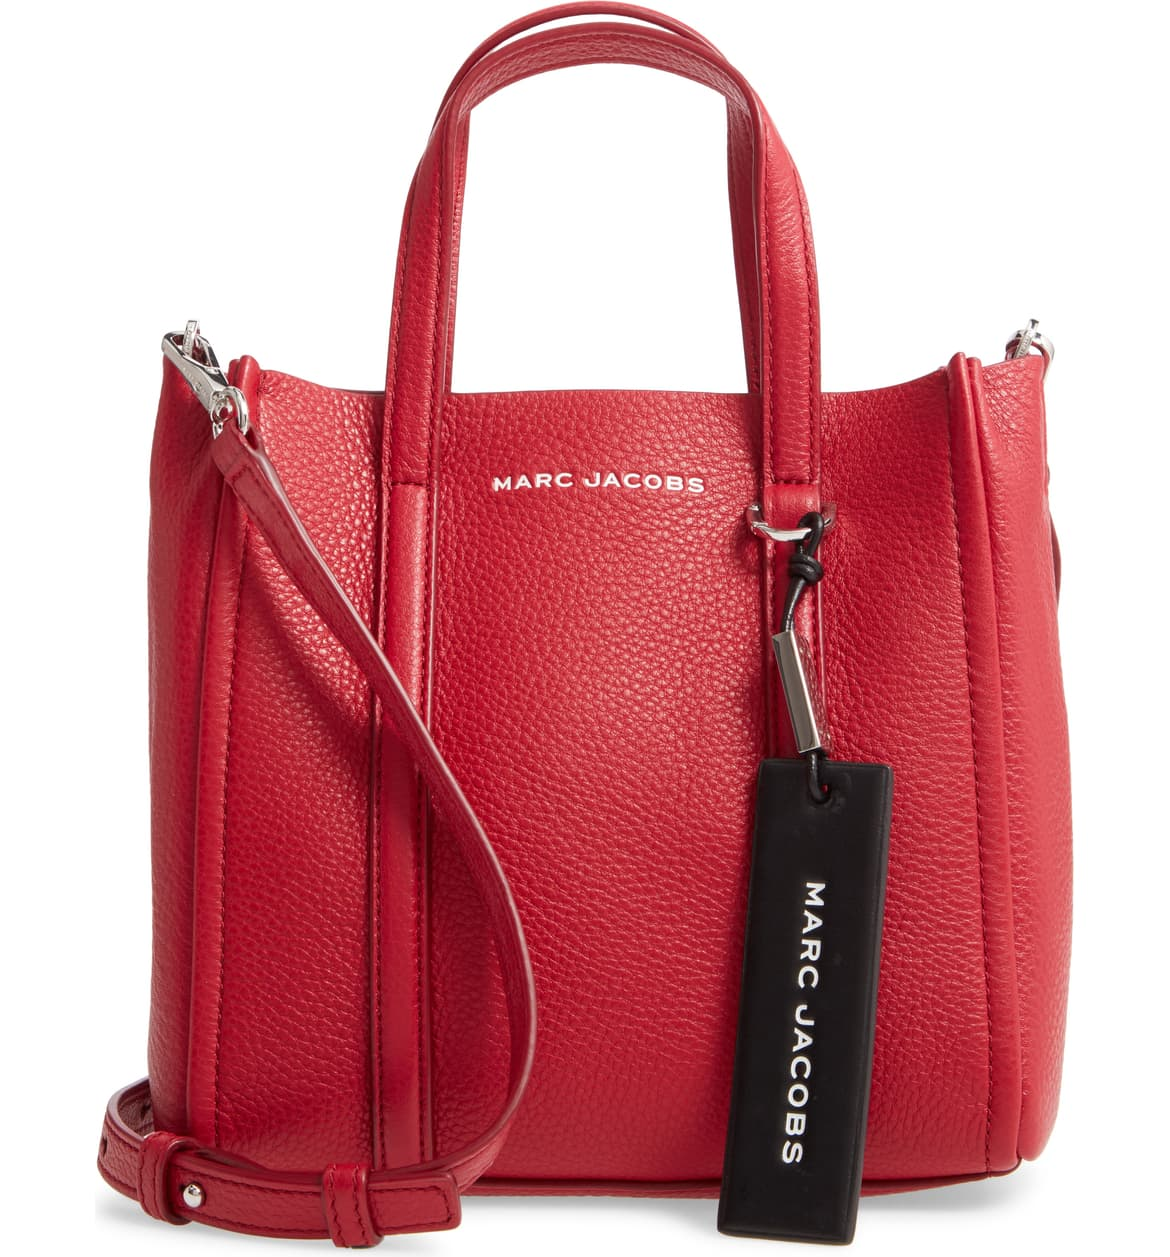 Marc Jacobs cherry red leather top handle tote Nordstrom winter sale